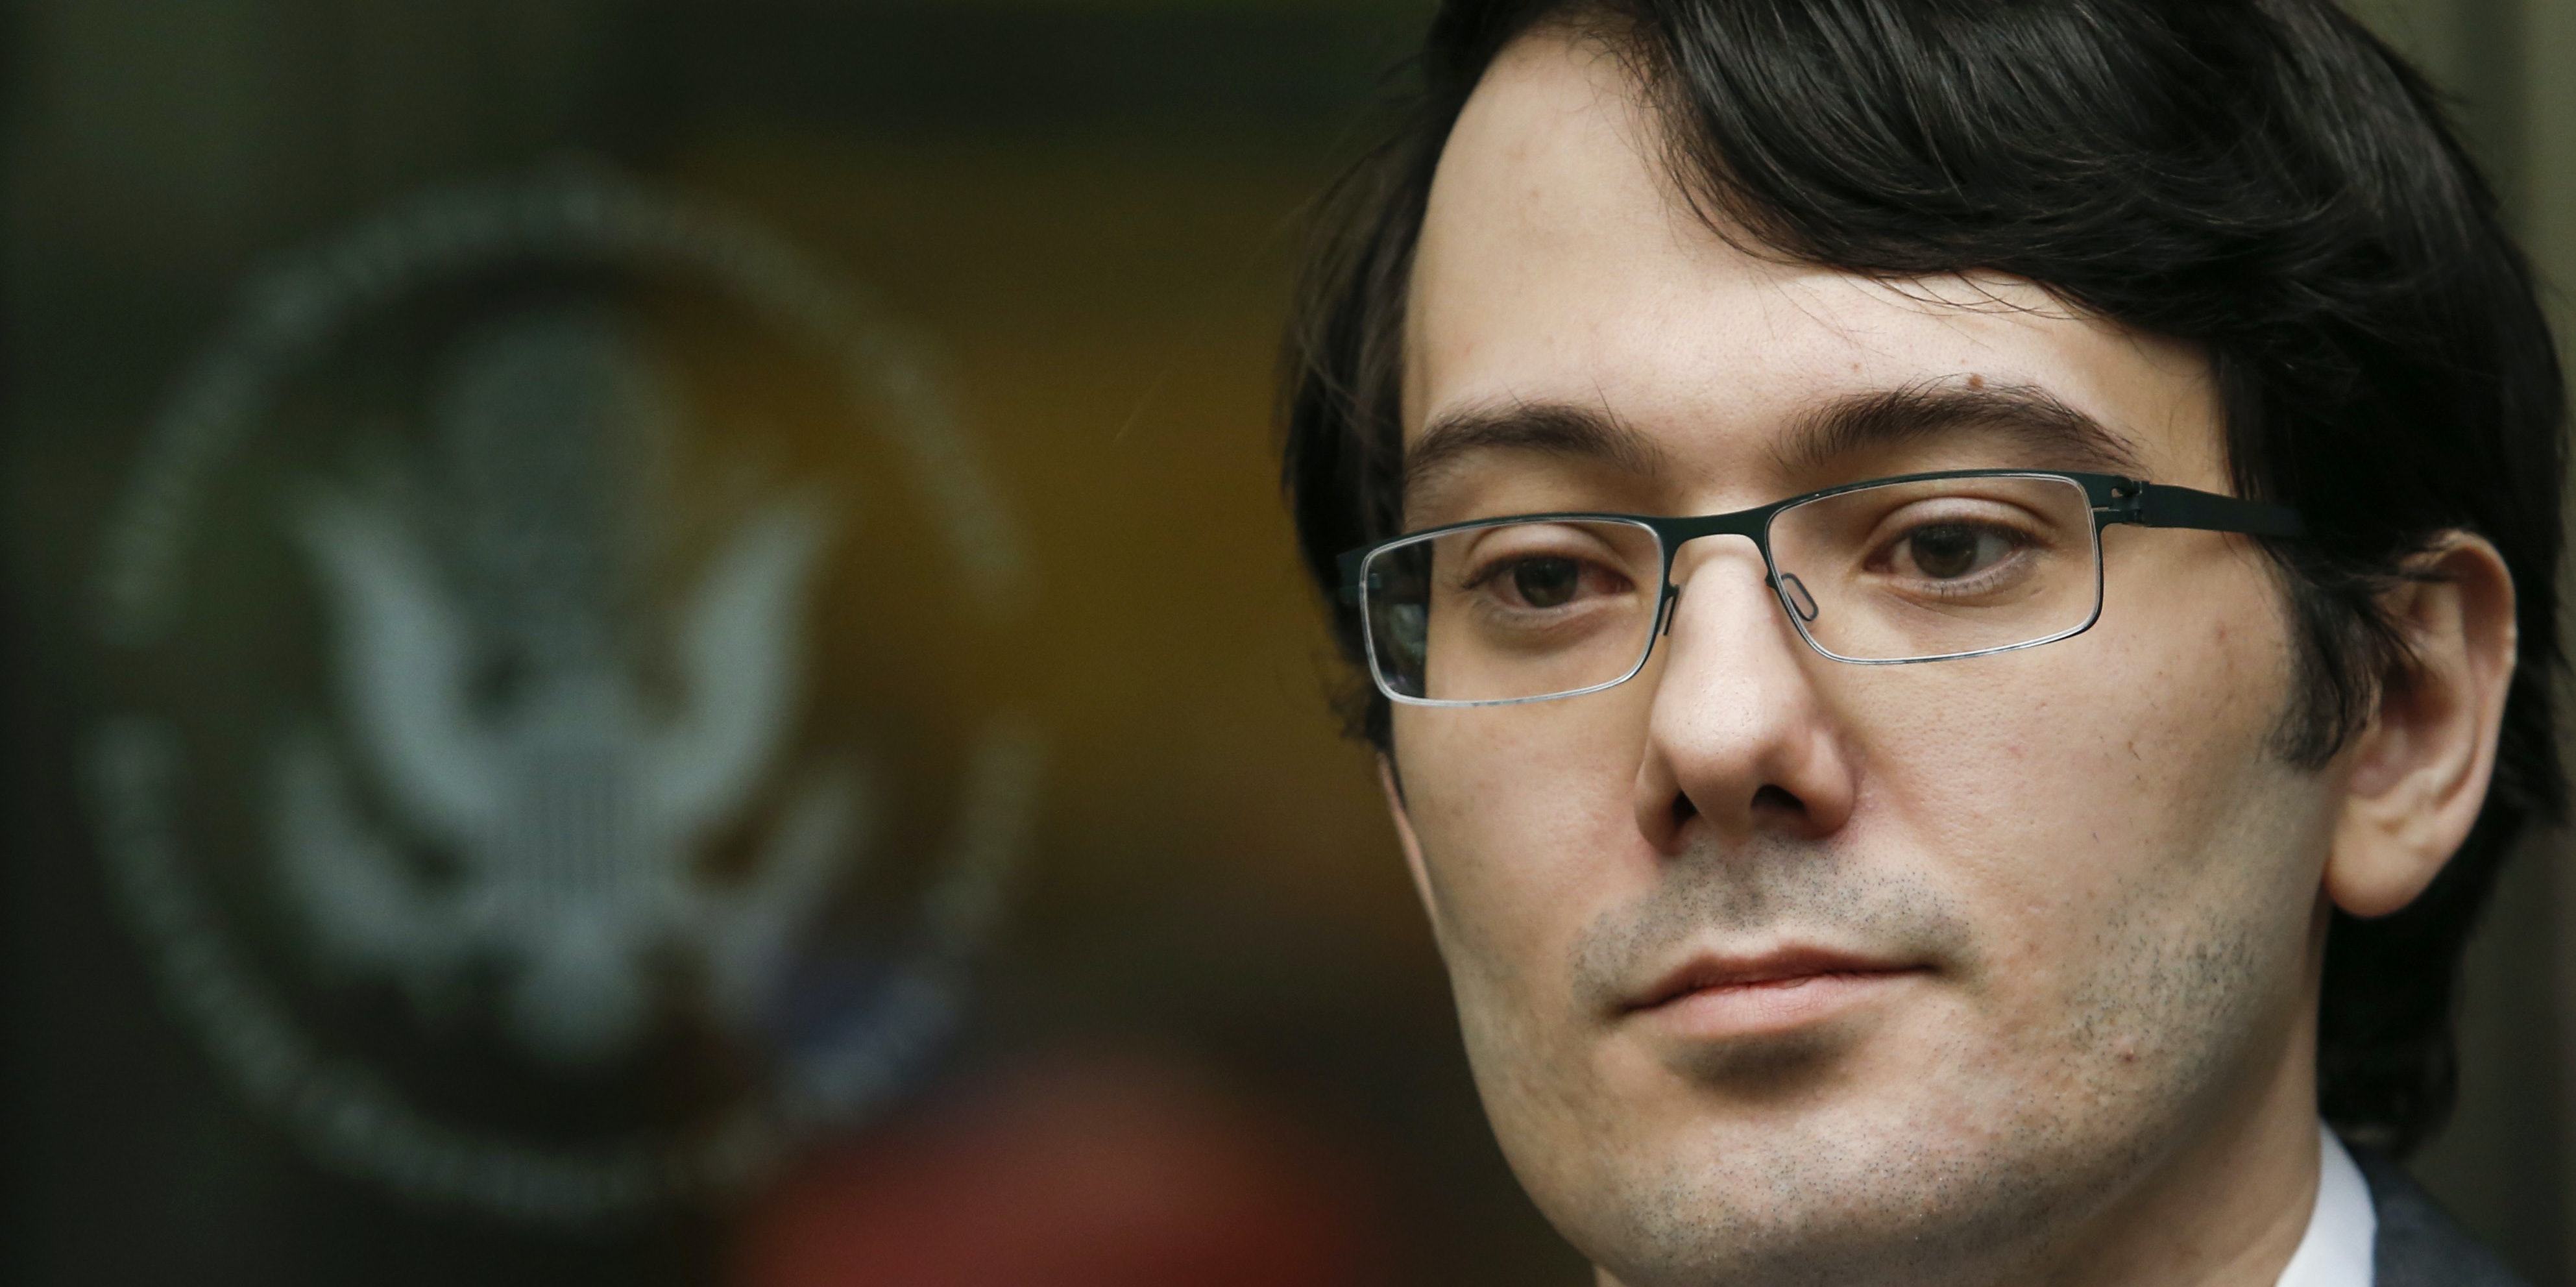 NEW YORK, NY - MAY 03: Martin Shkreli, former Chief Executive Officer of Turing Pharmaceuticals LLC, exits federal court  on May 3, 2016 in the Brooklyn borough of New York City. Shkreli appeared in U.S. District Court to face multiple fraud charges, including illegally siphoning money from one of his companies to pay off bad market bets made by another of his companies. (Photo by Eduardo Munoz Alvarez/Getty Images)